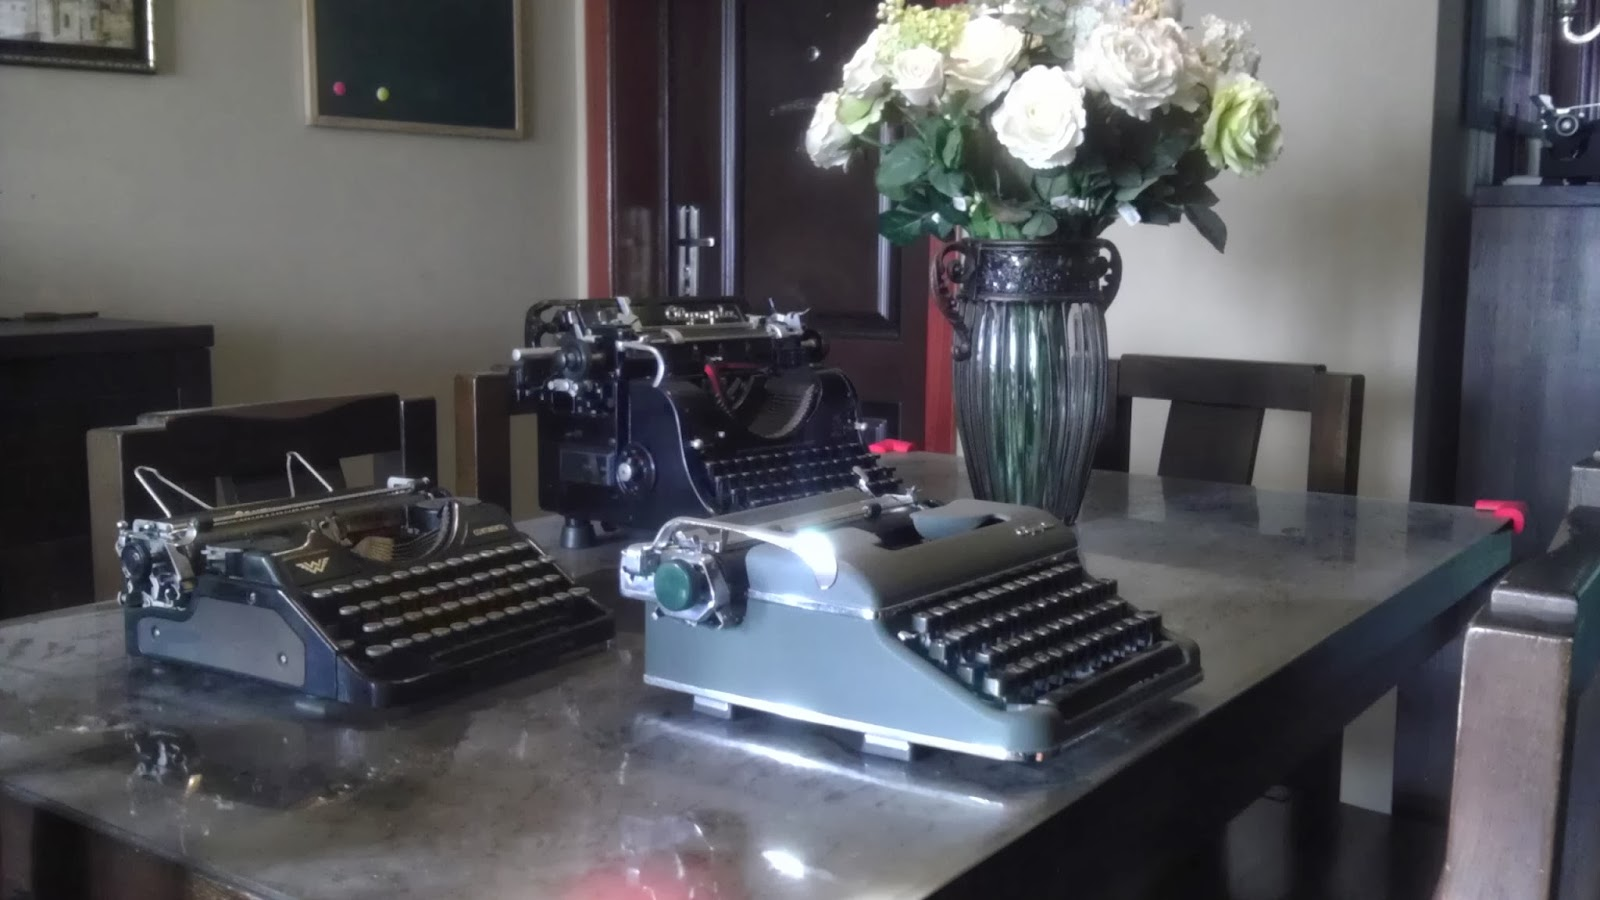 P.S. These Typewriters And My House Look So Dusty In These Pictures. Itu0027s  Not Because I Donu0027t Clean Often, The Phone Camera Sucks!